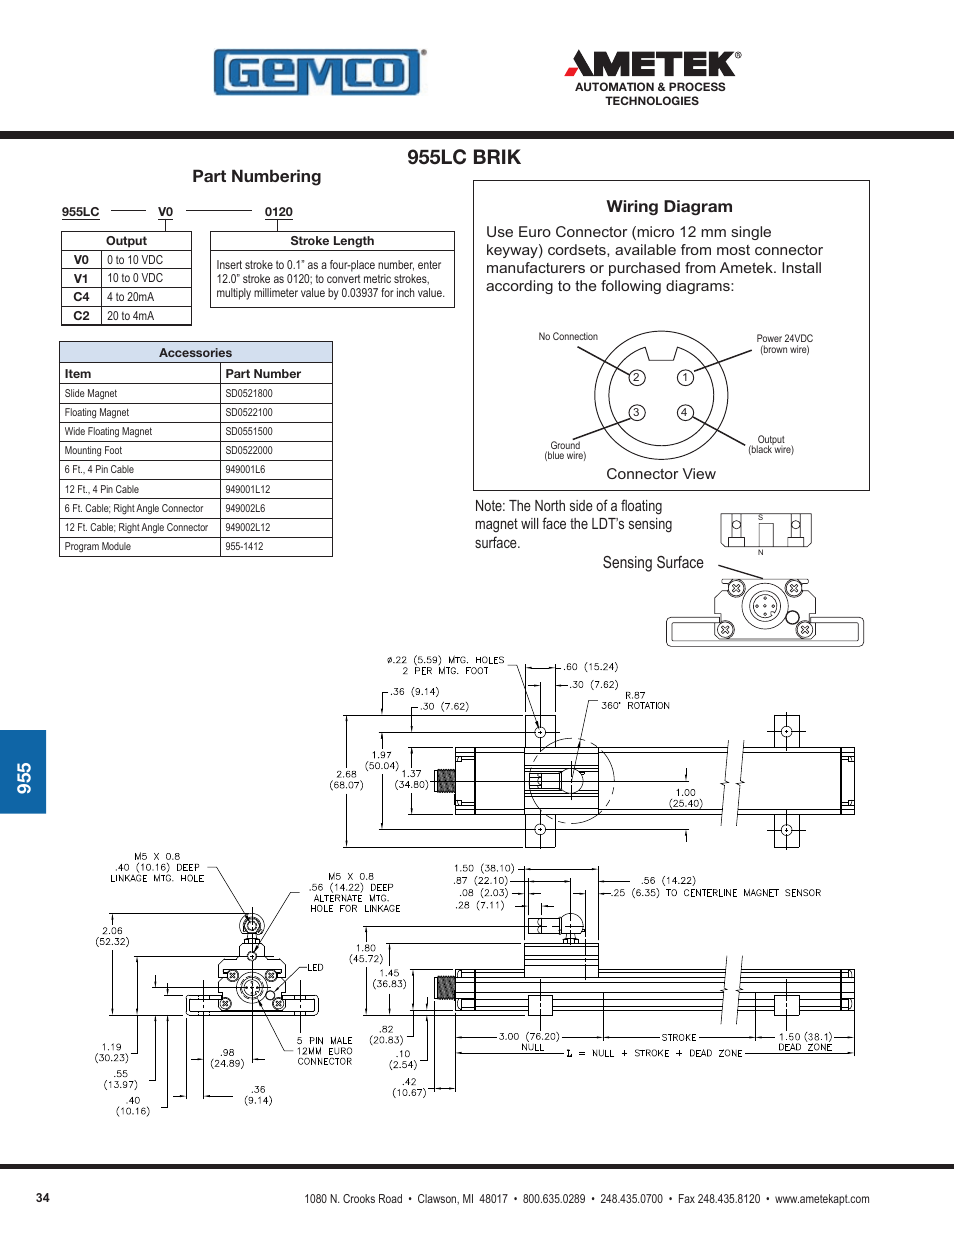 955lc Brik  Part Numbering  Wiring Diagram